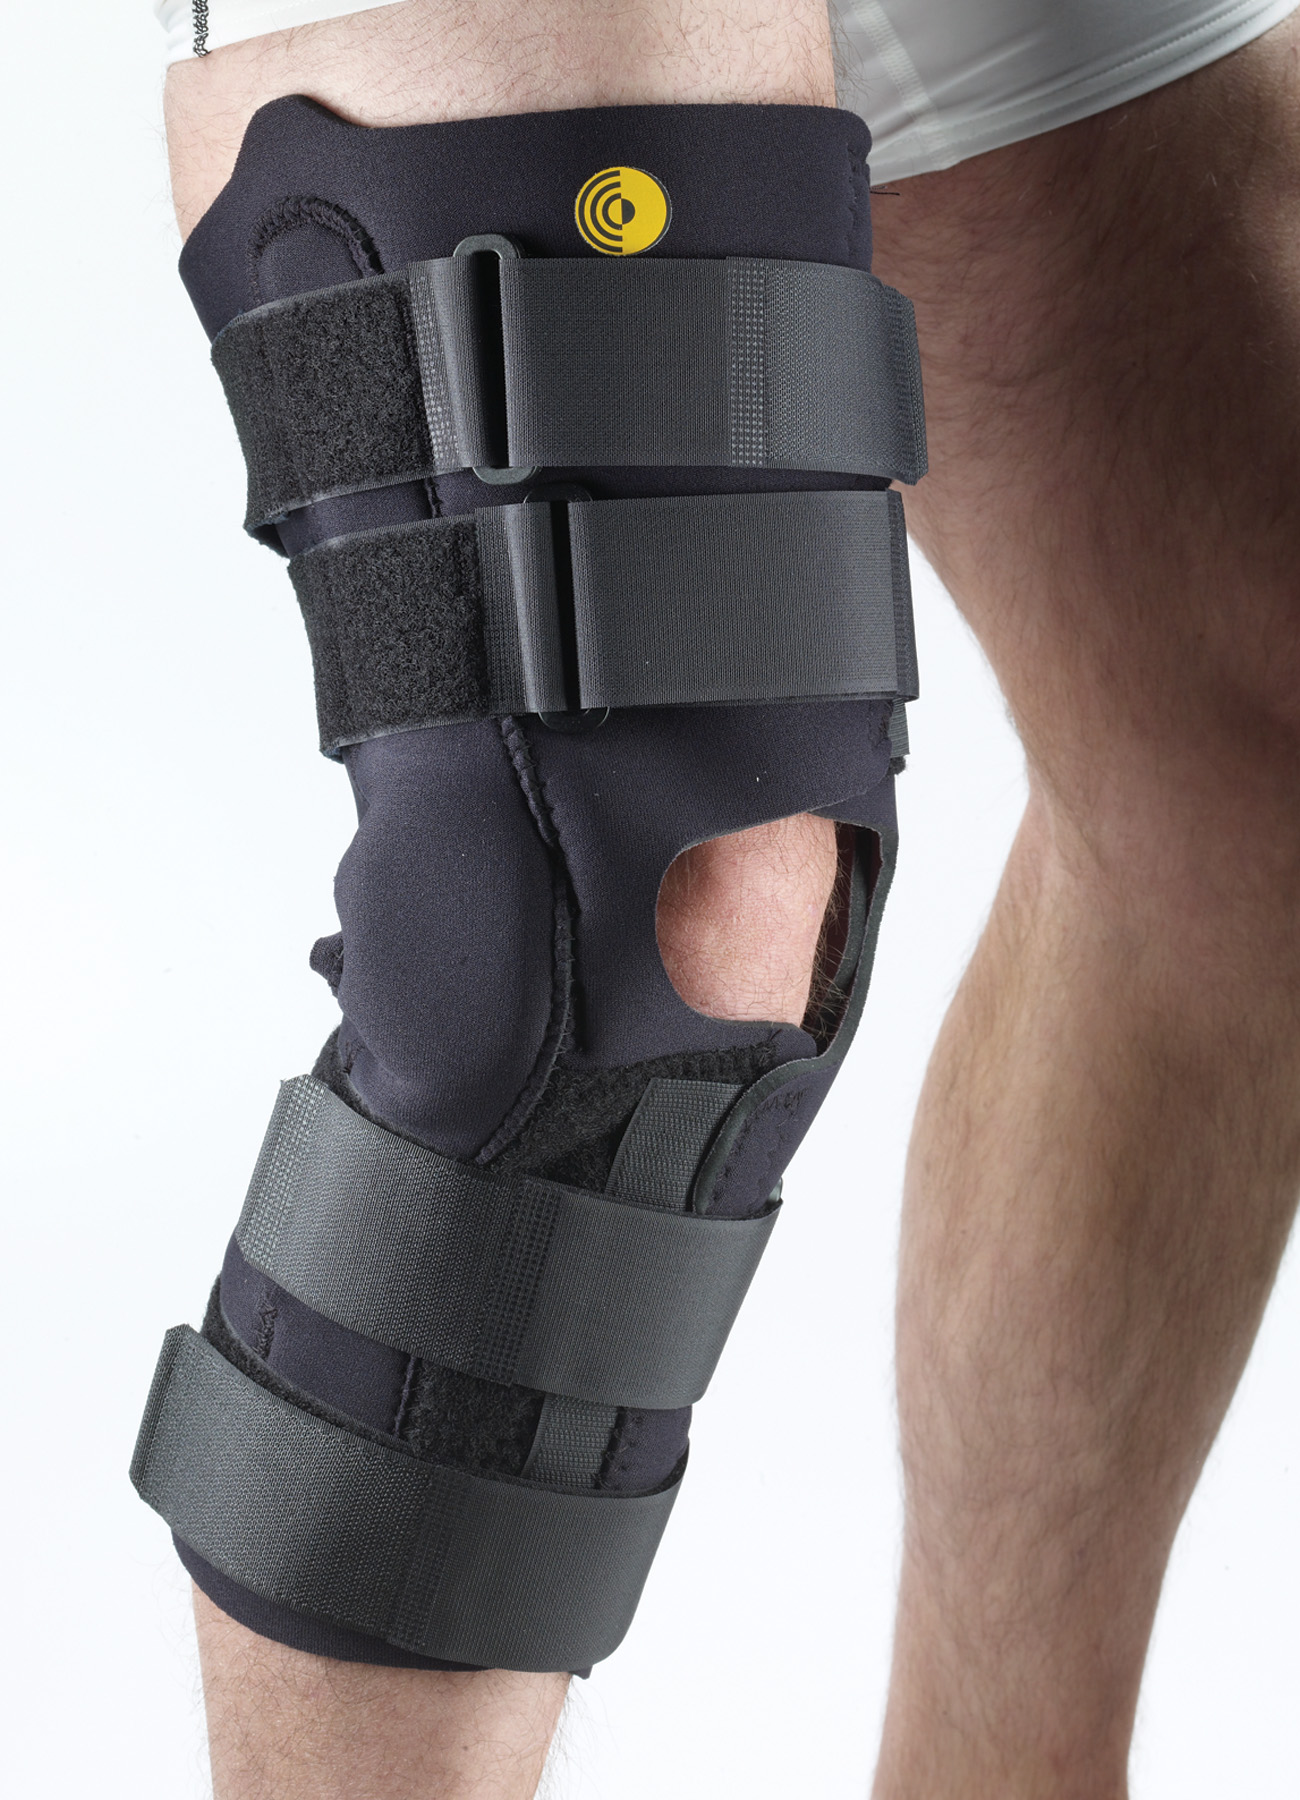 Image result for corflex knee brace price